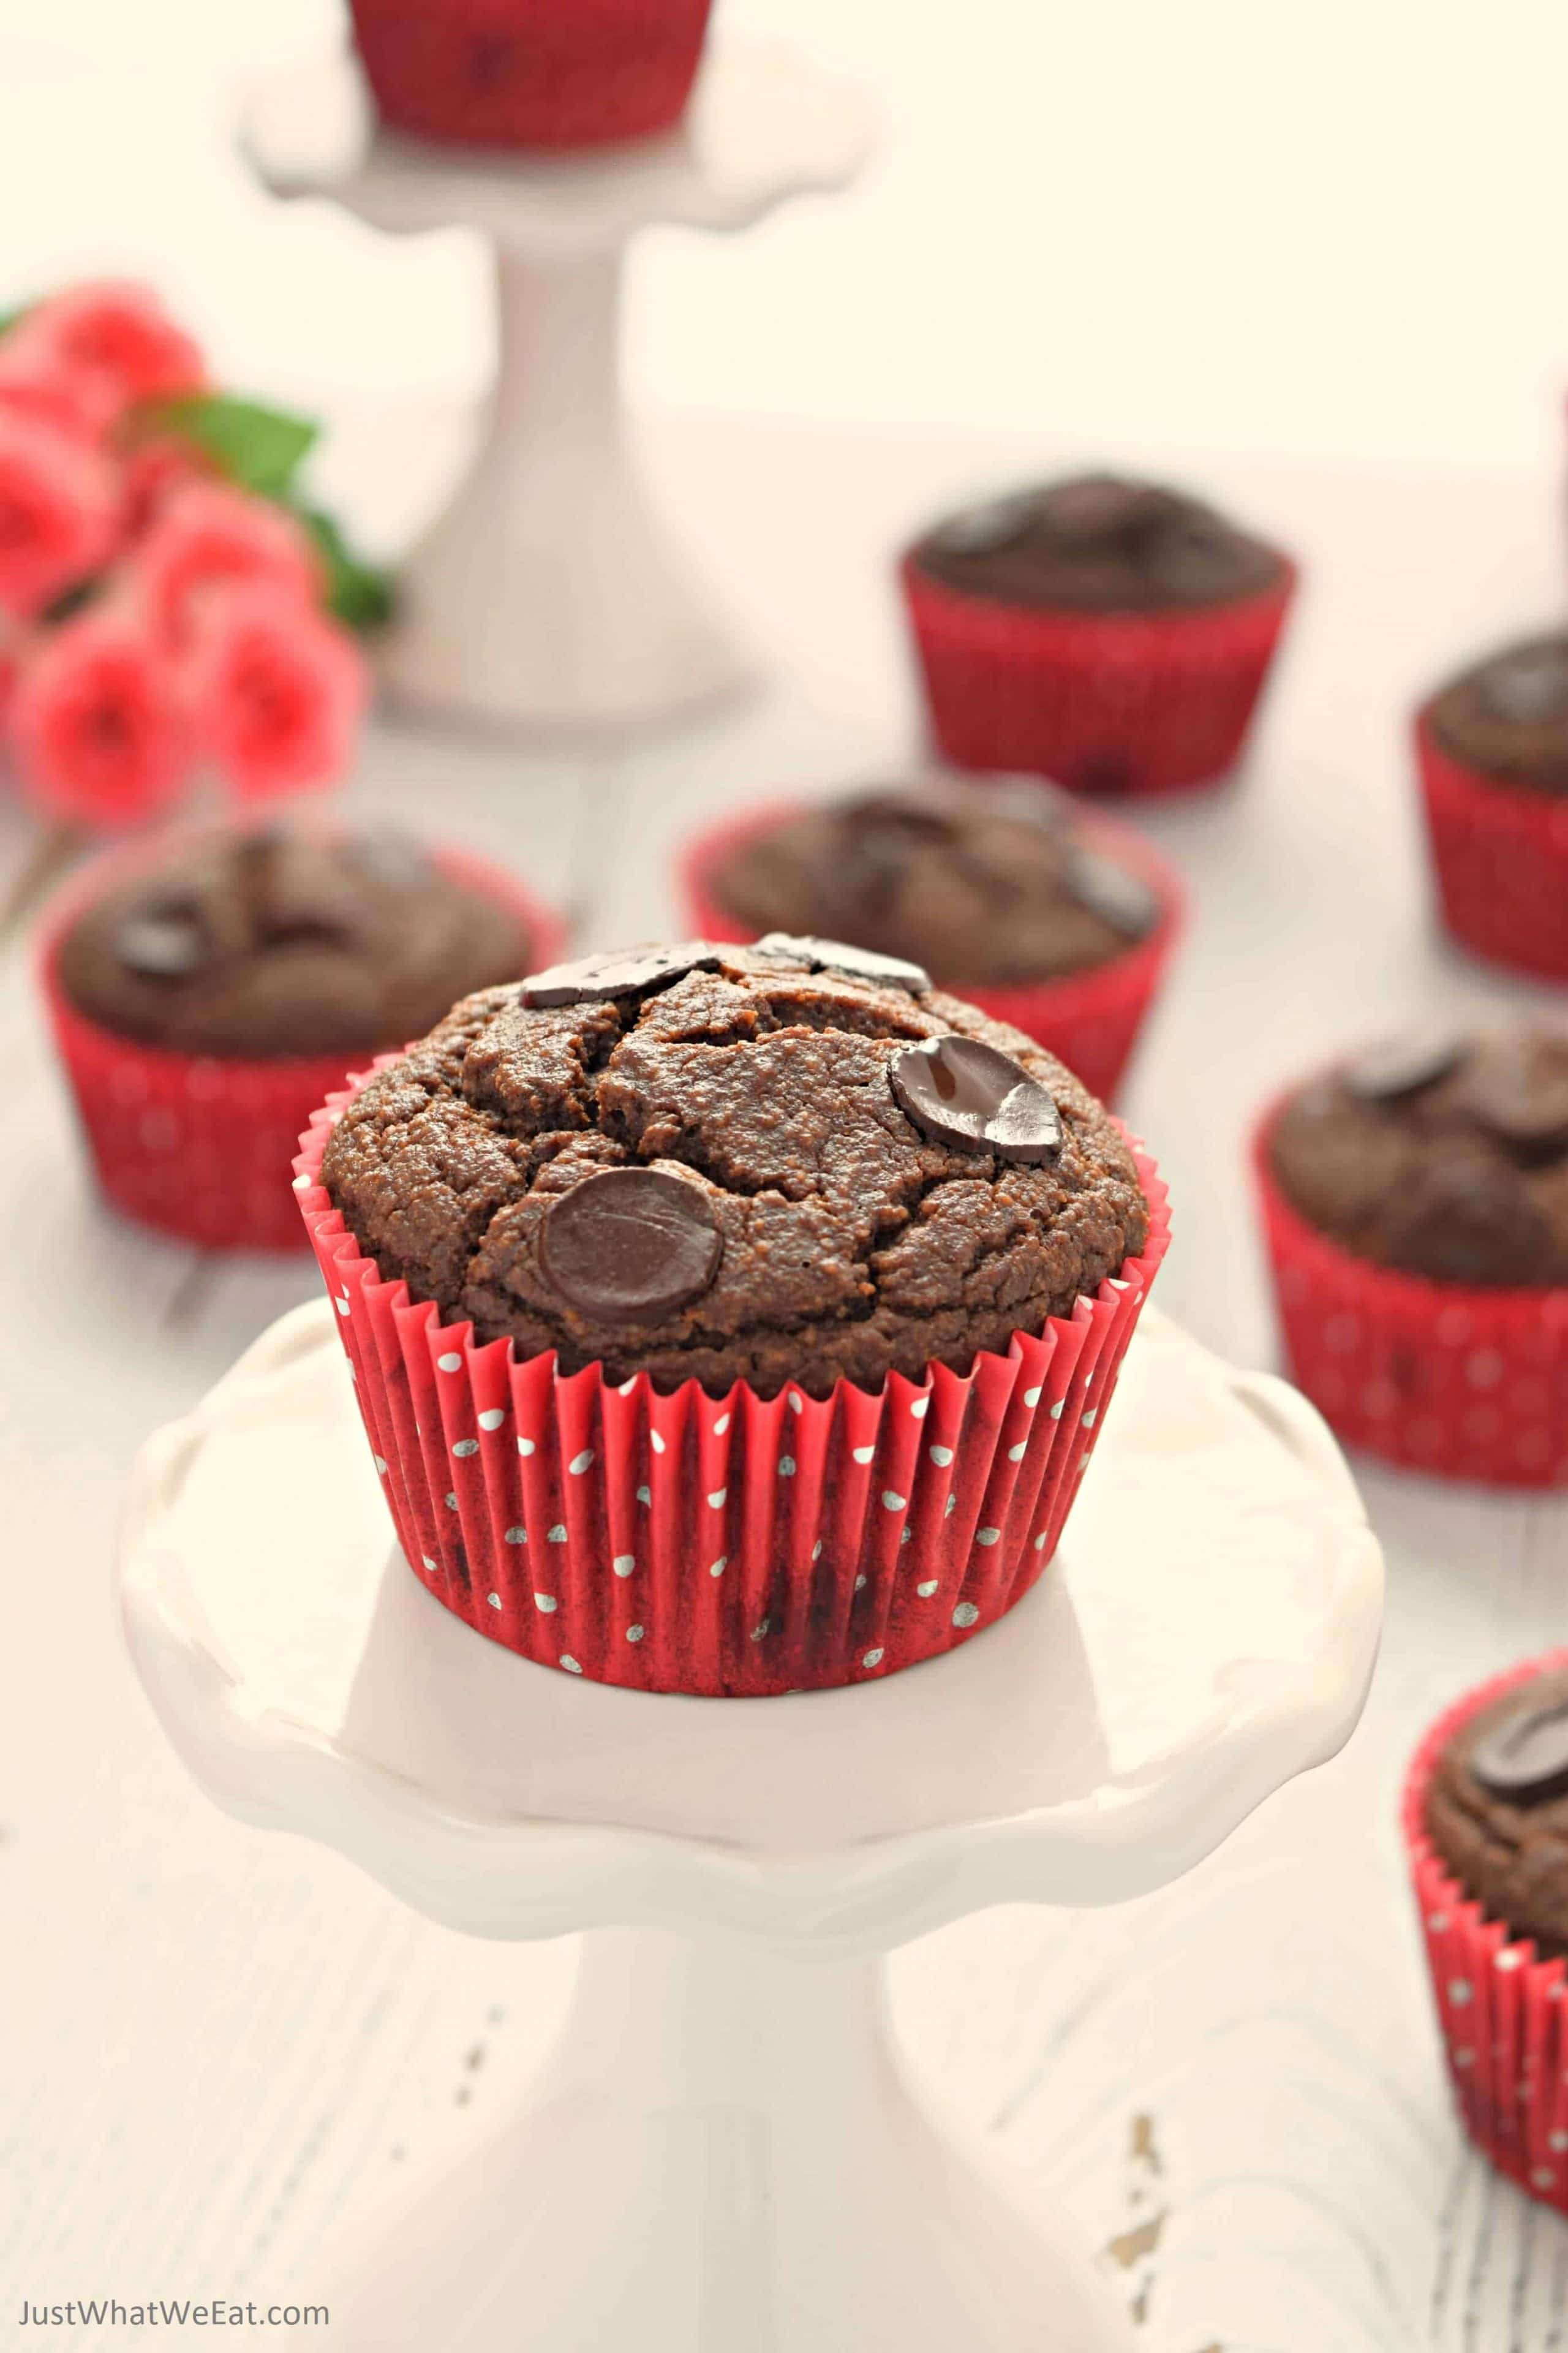 Double Chocolate Muffins - Gluten Free, Vegan